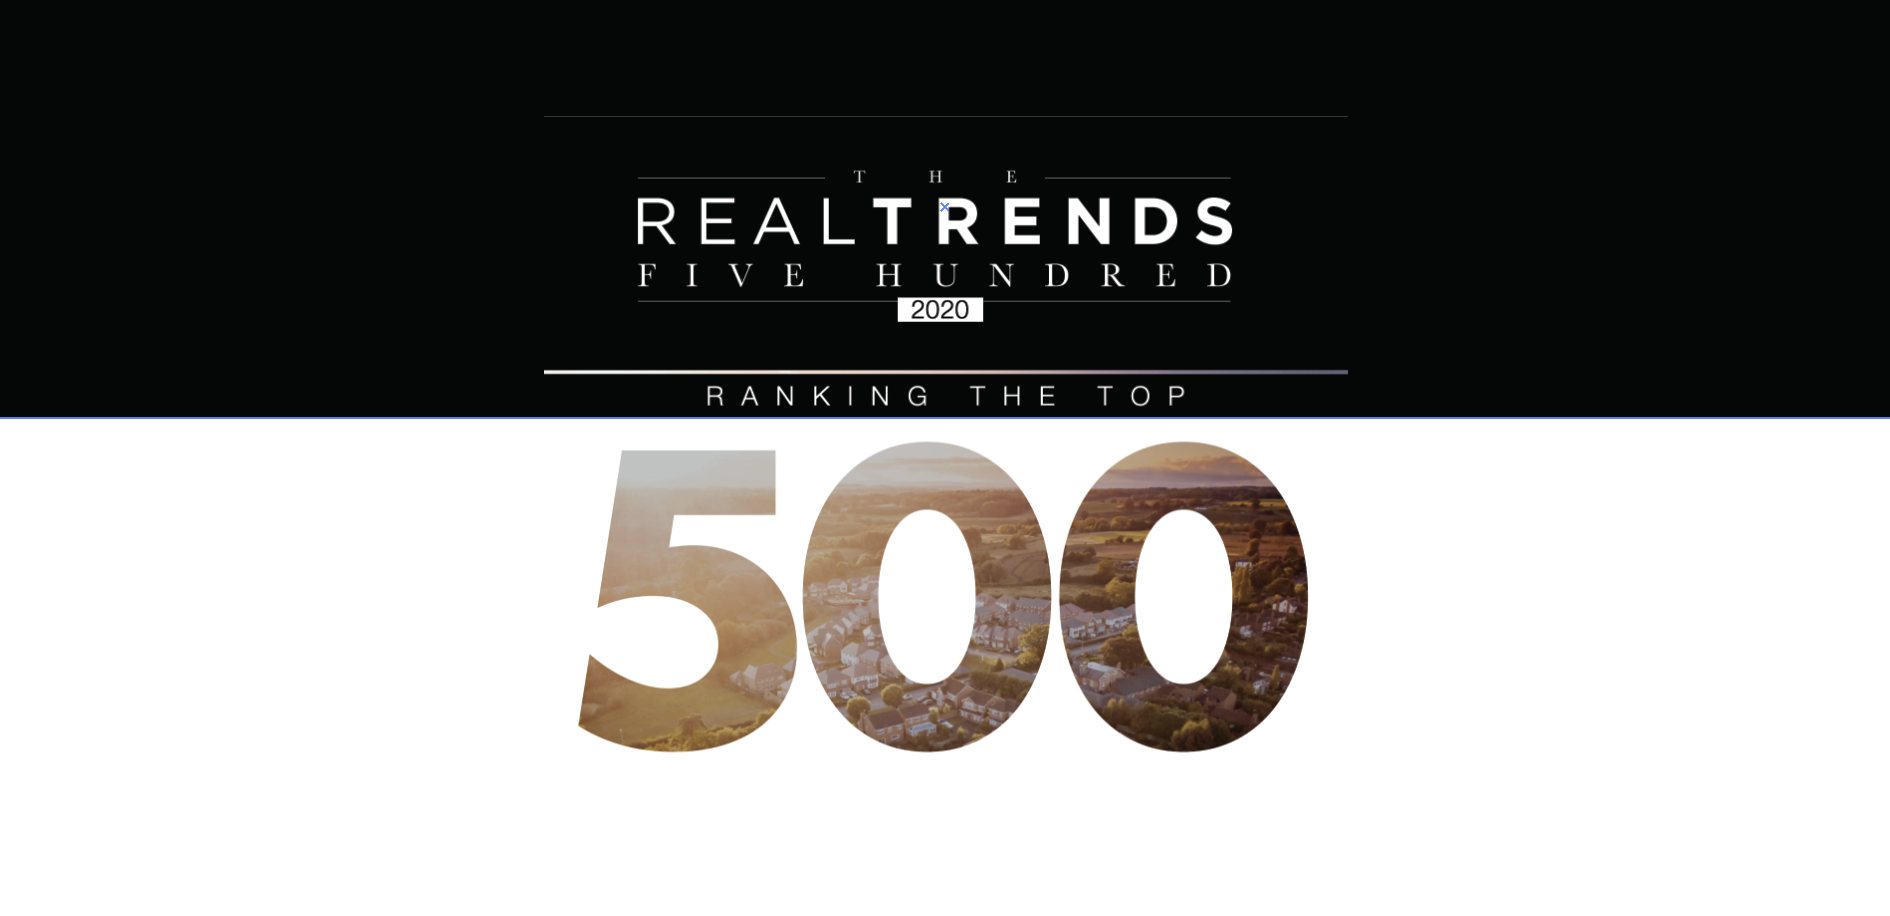 SILVERCREEK REALTY GROUP | THE NATION'S TOP 500